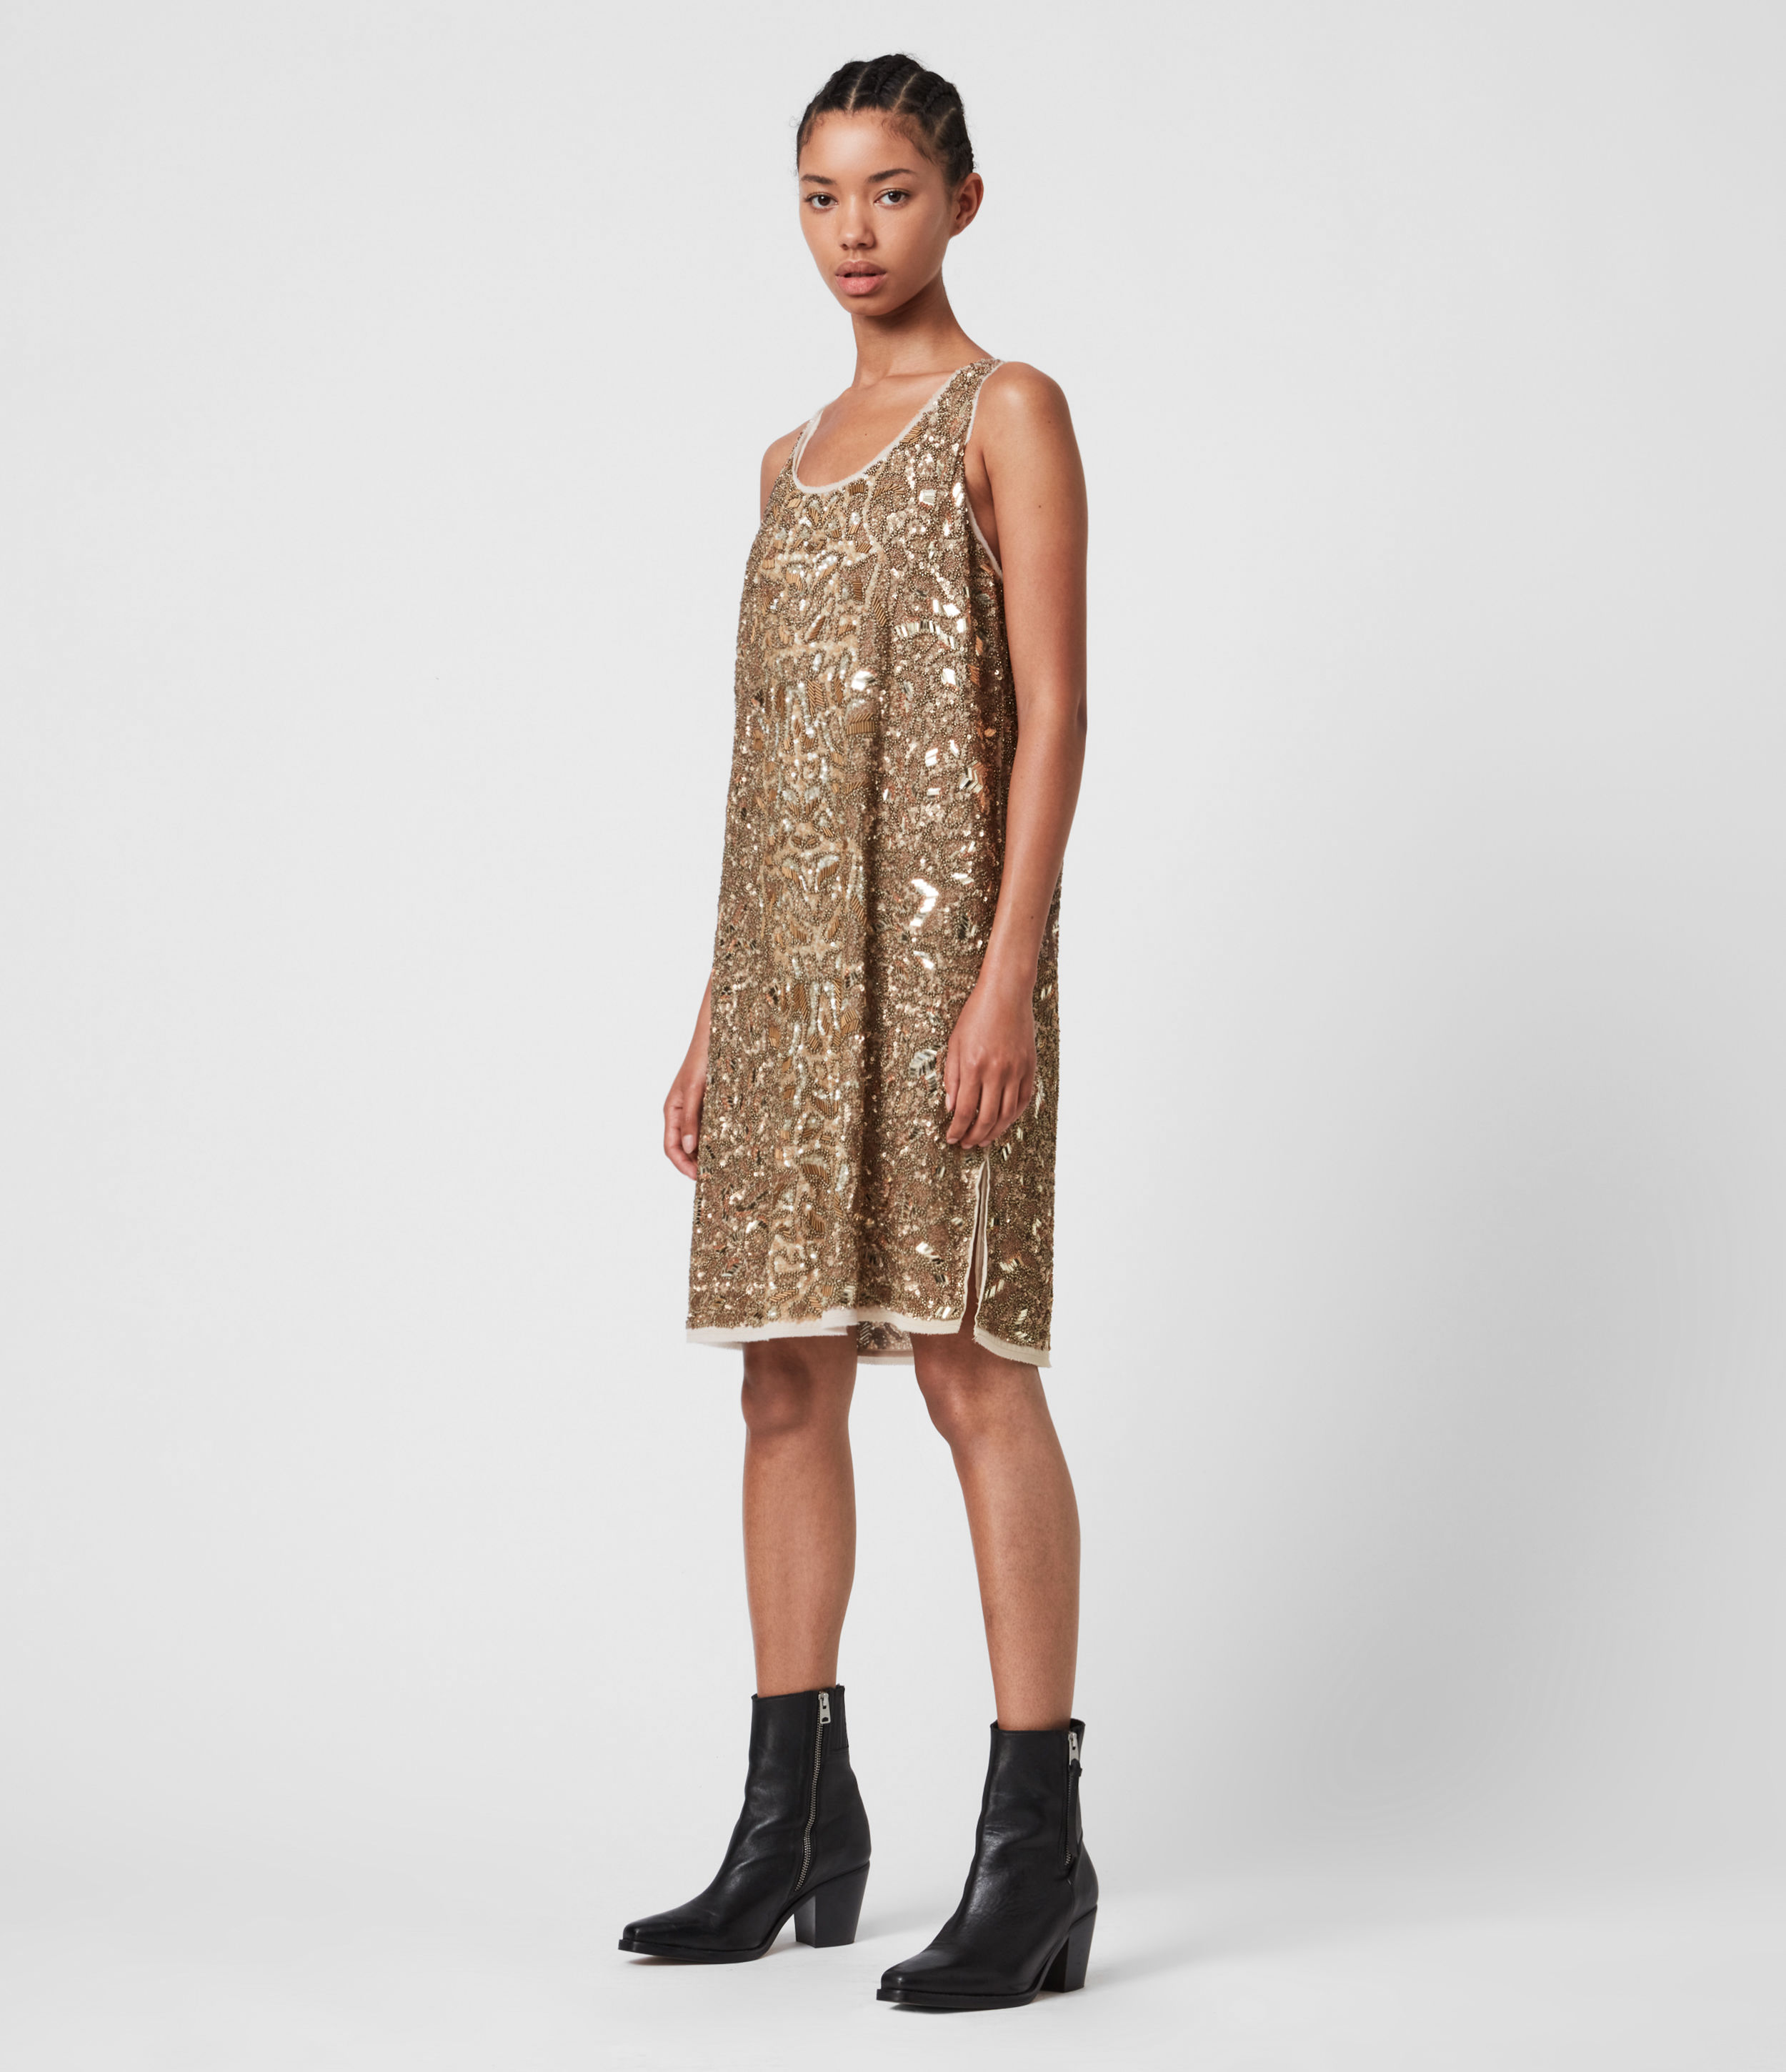 AllSaints Brellie Embellished Dress